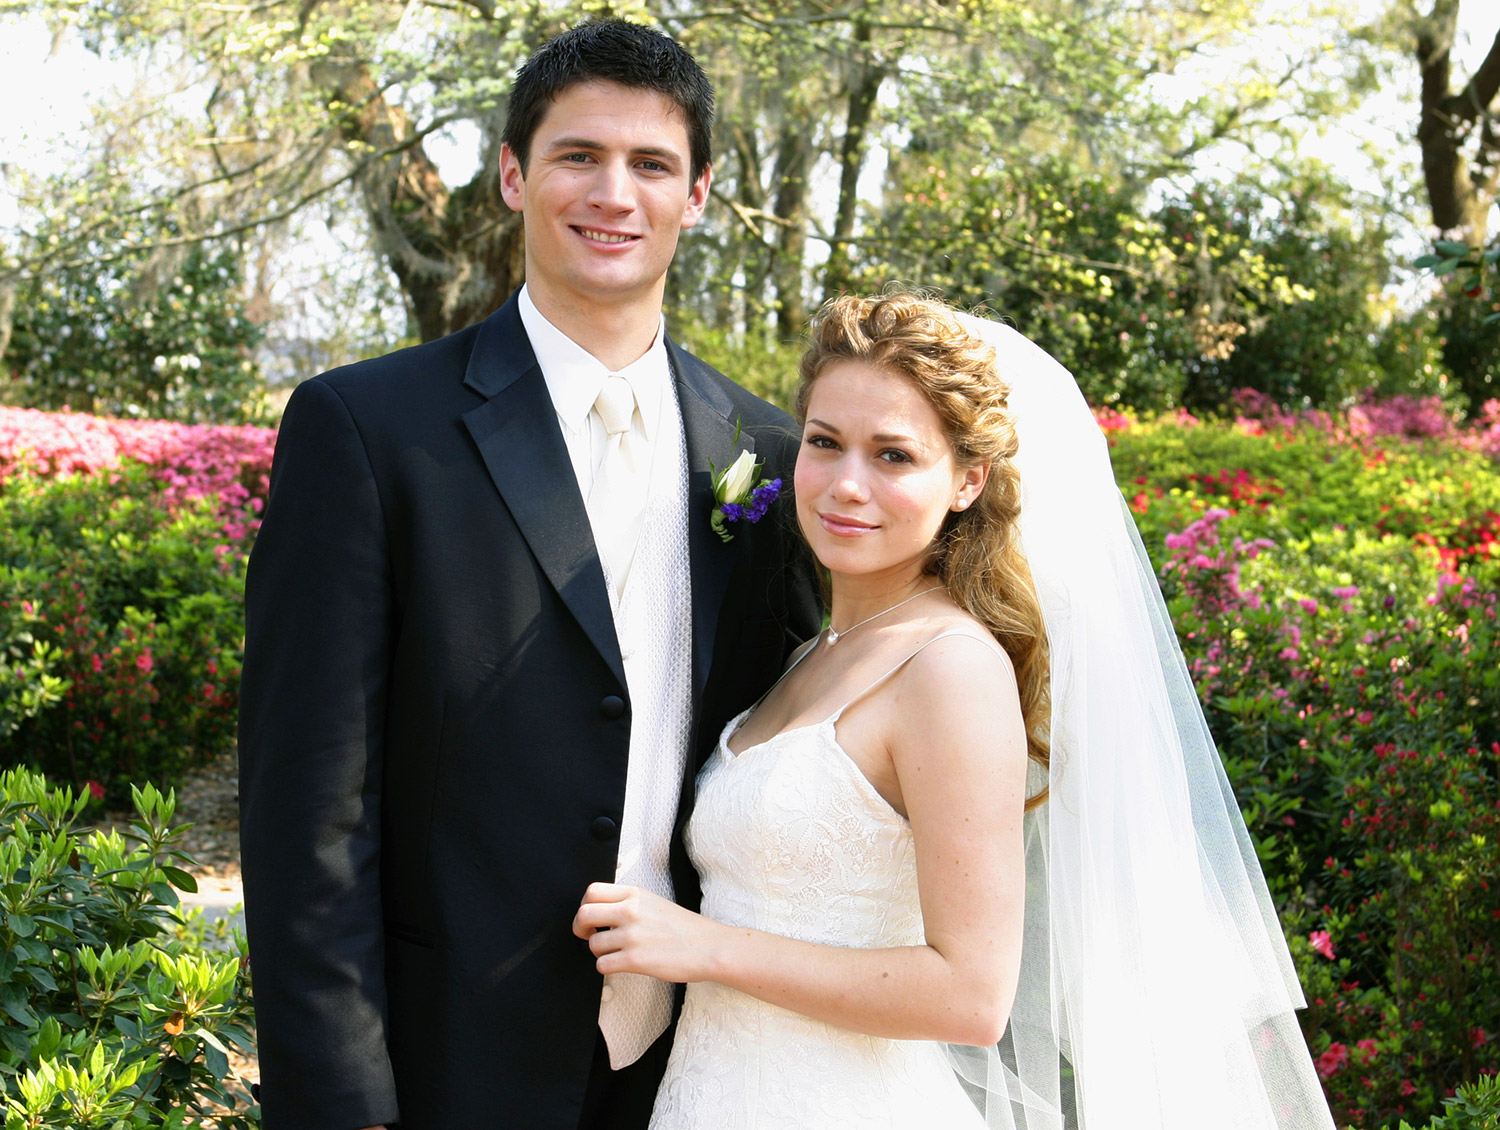 James Lafferty and Bethany Joy Galeotti